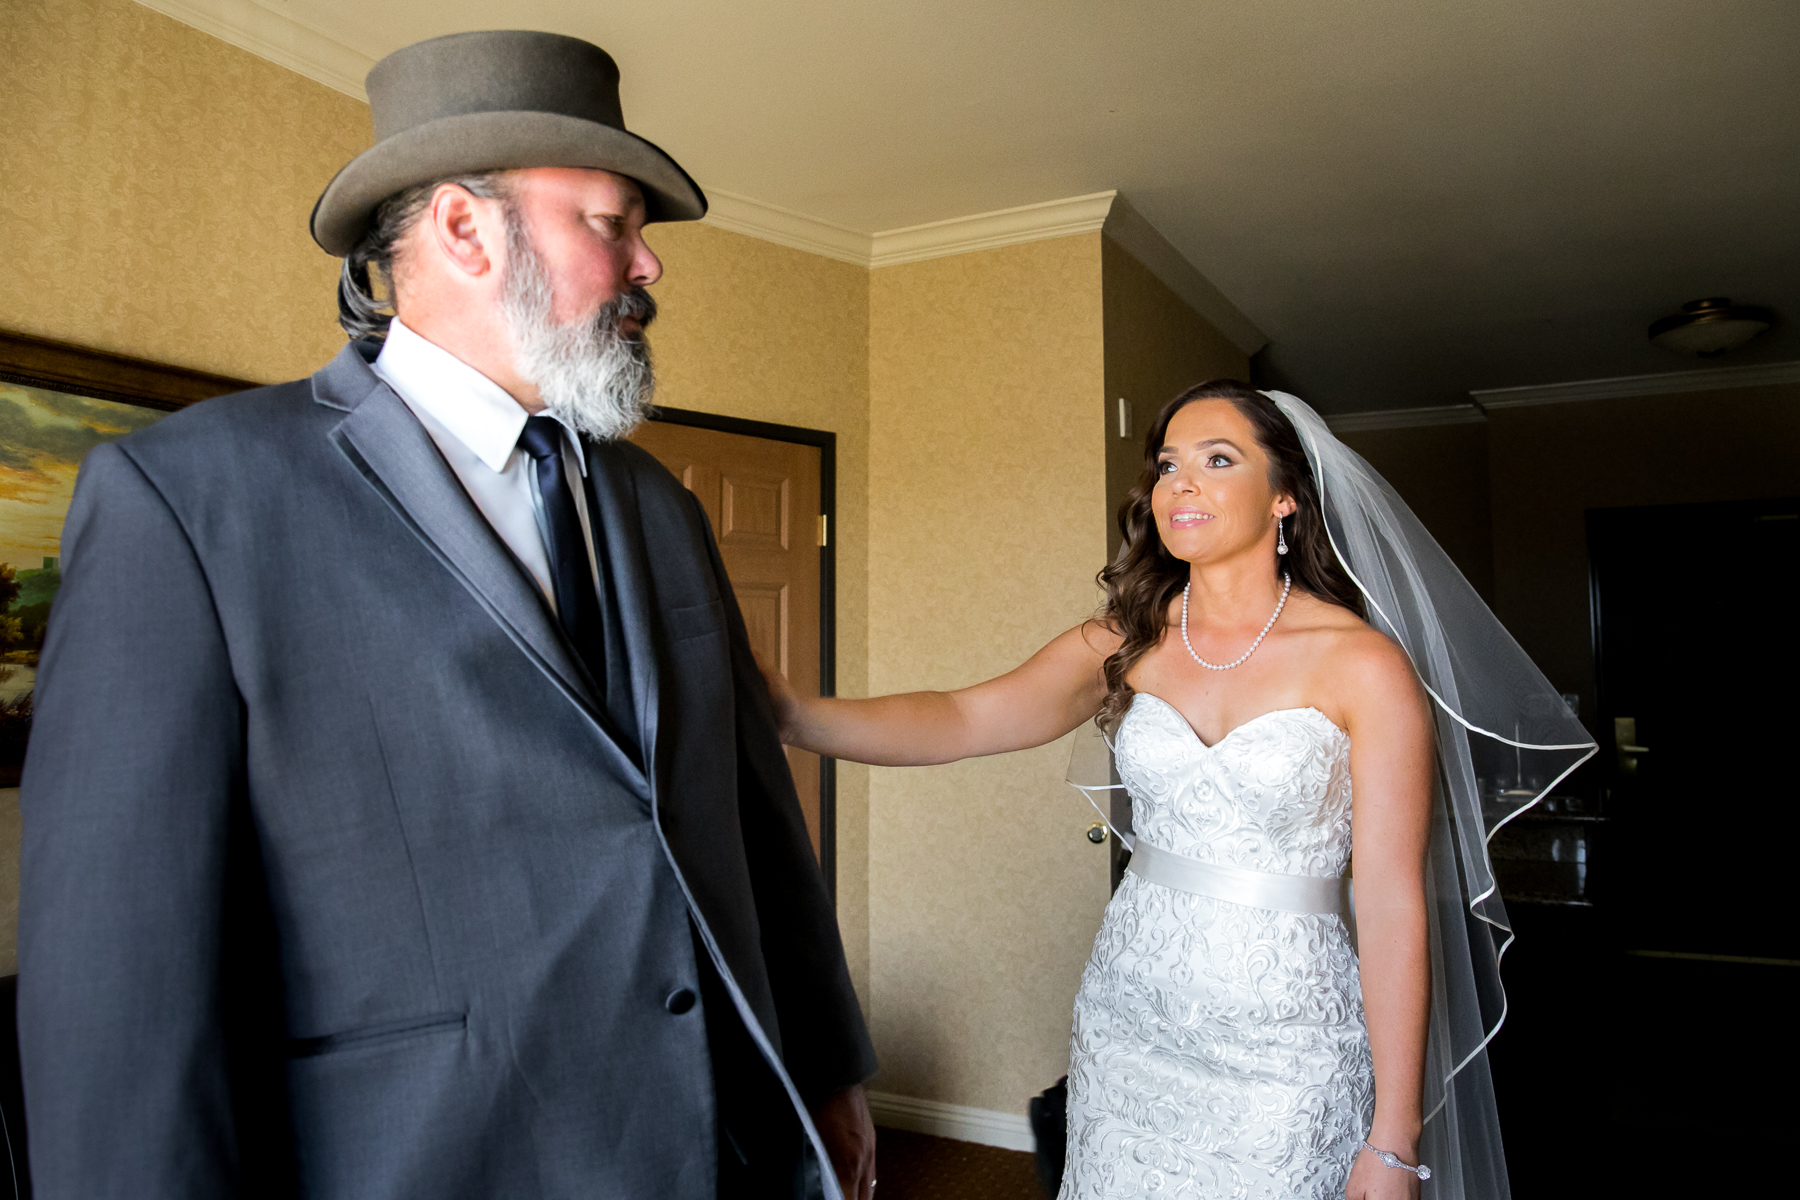 bride first look with dad at wedding in ayres hotel in corona